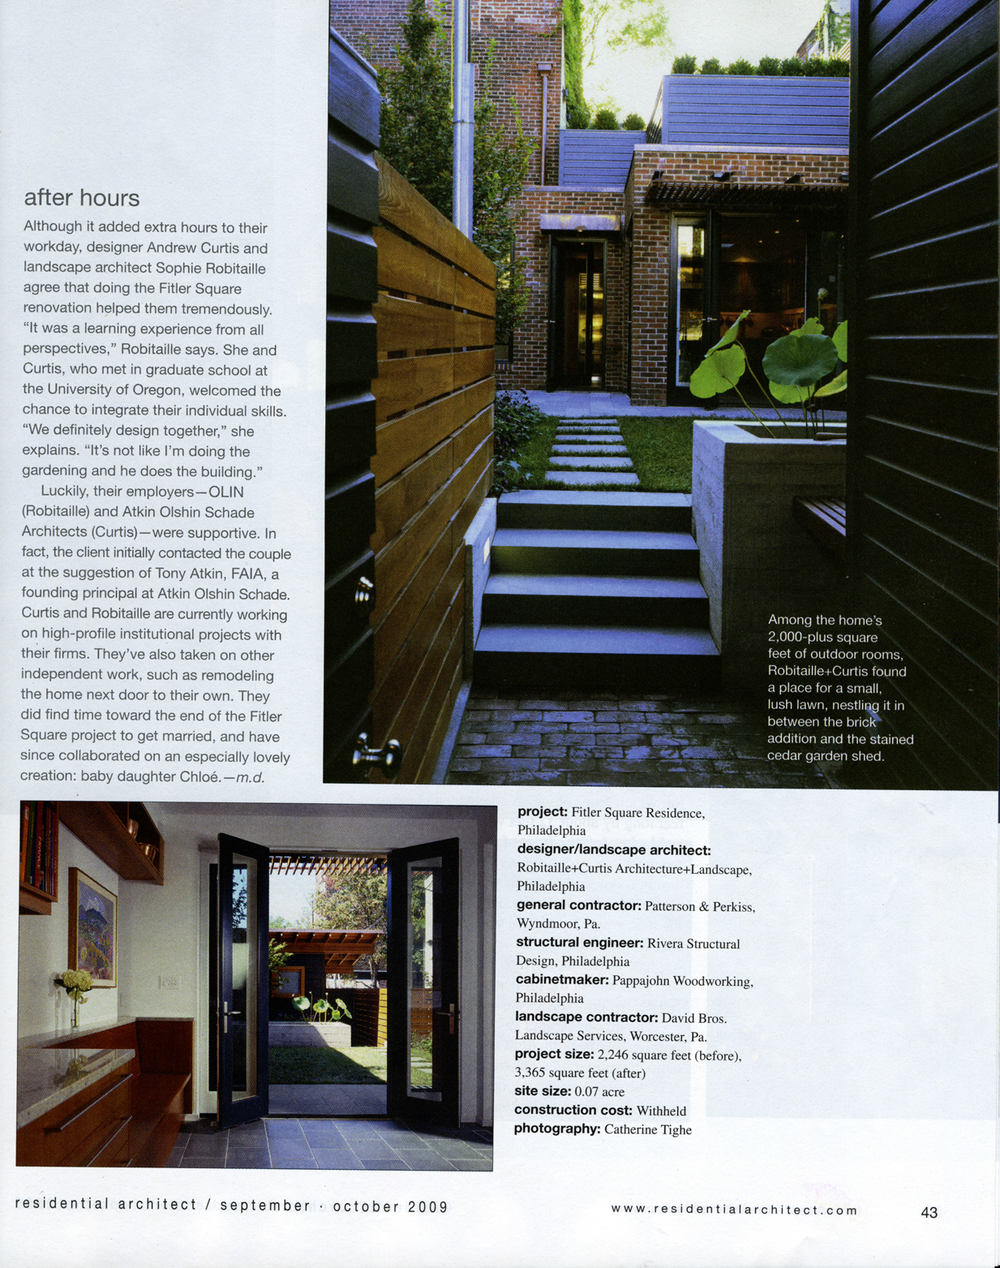 Residential architect magazine robitaillecurtis for D architecture magazine